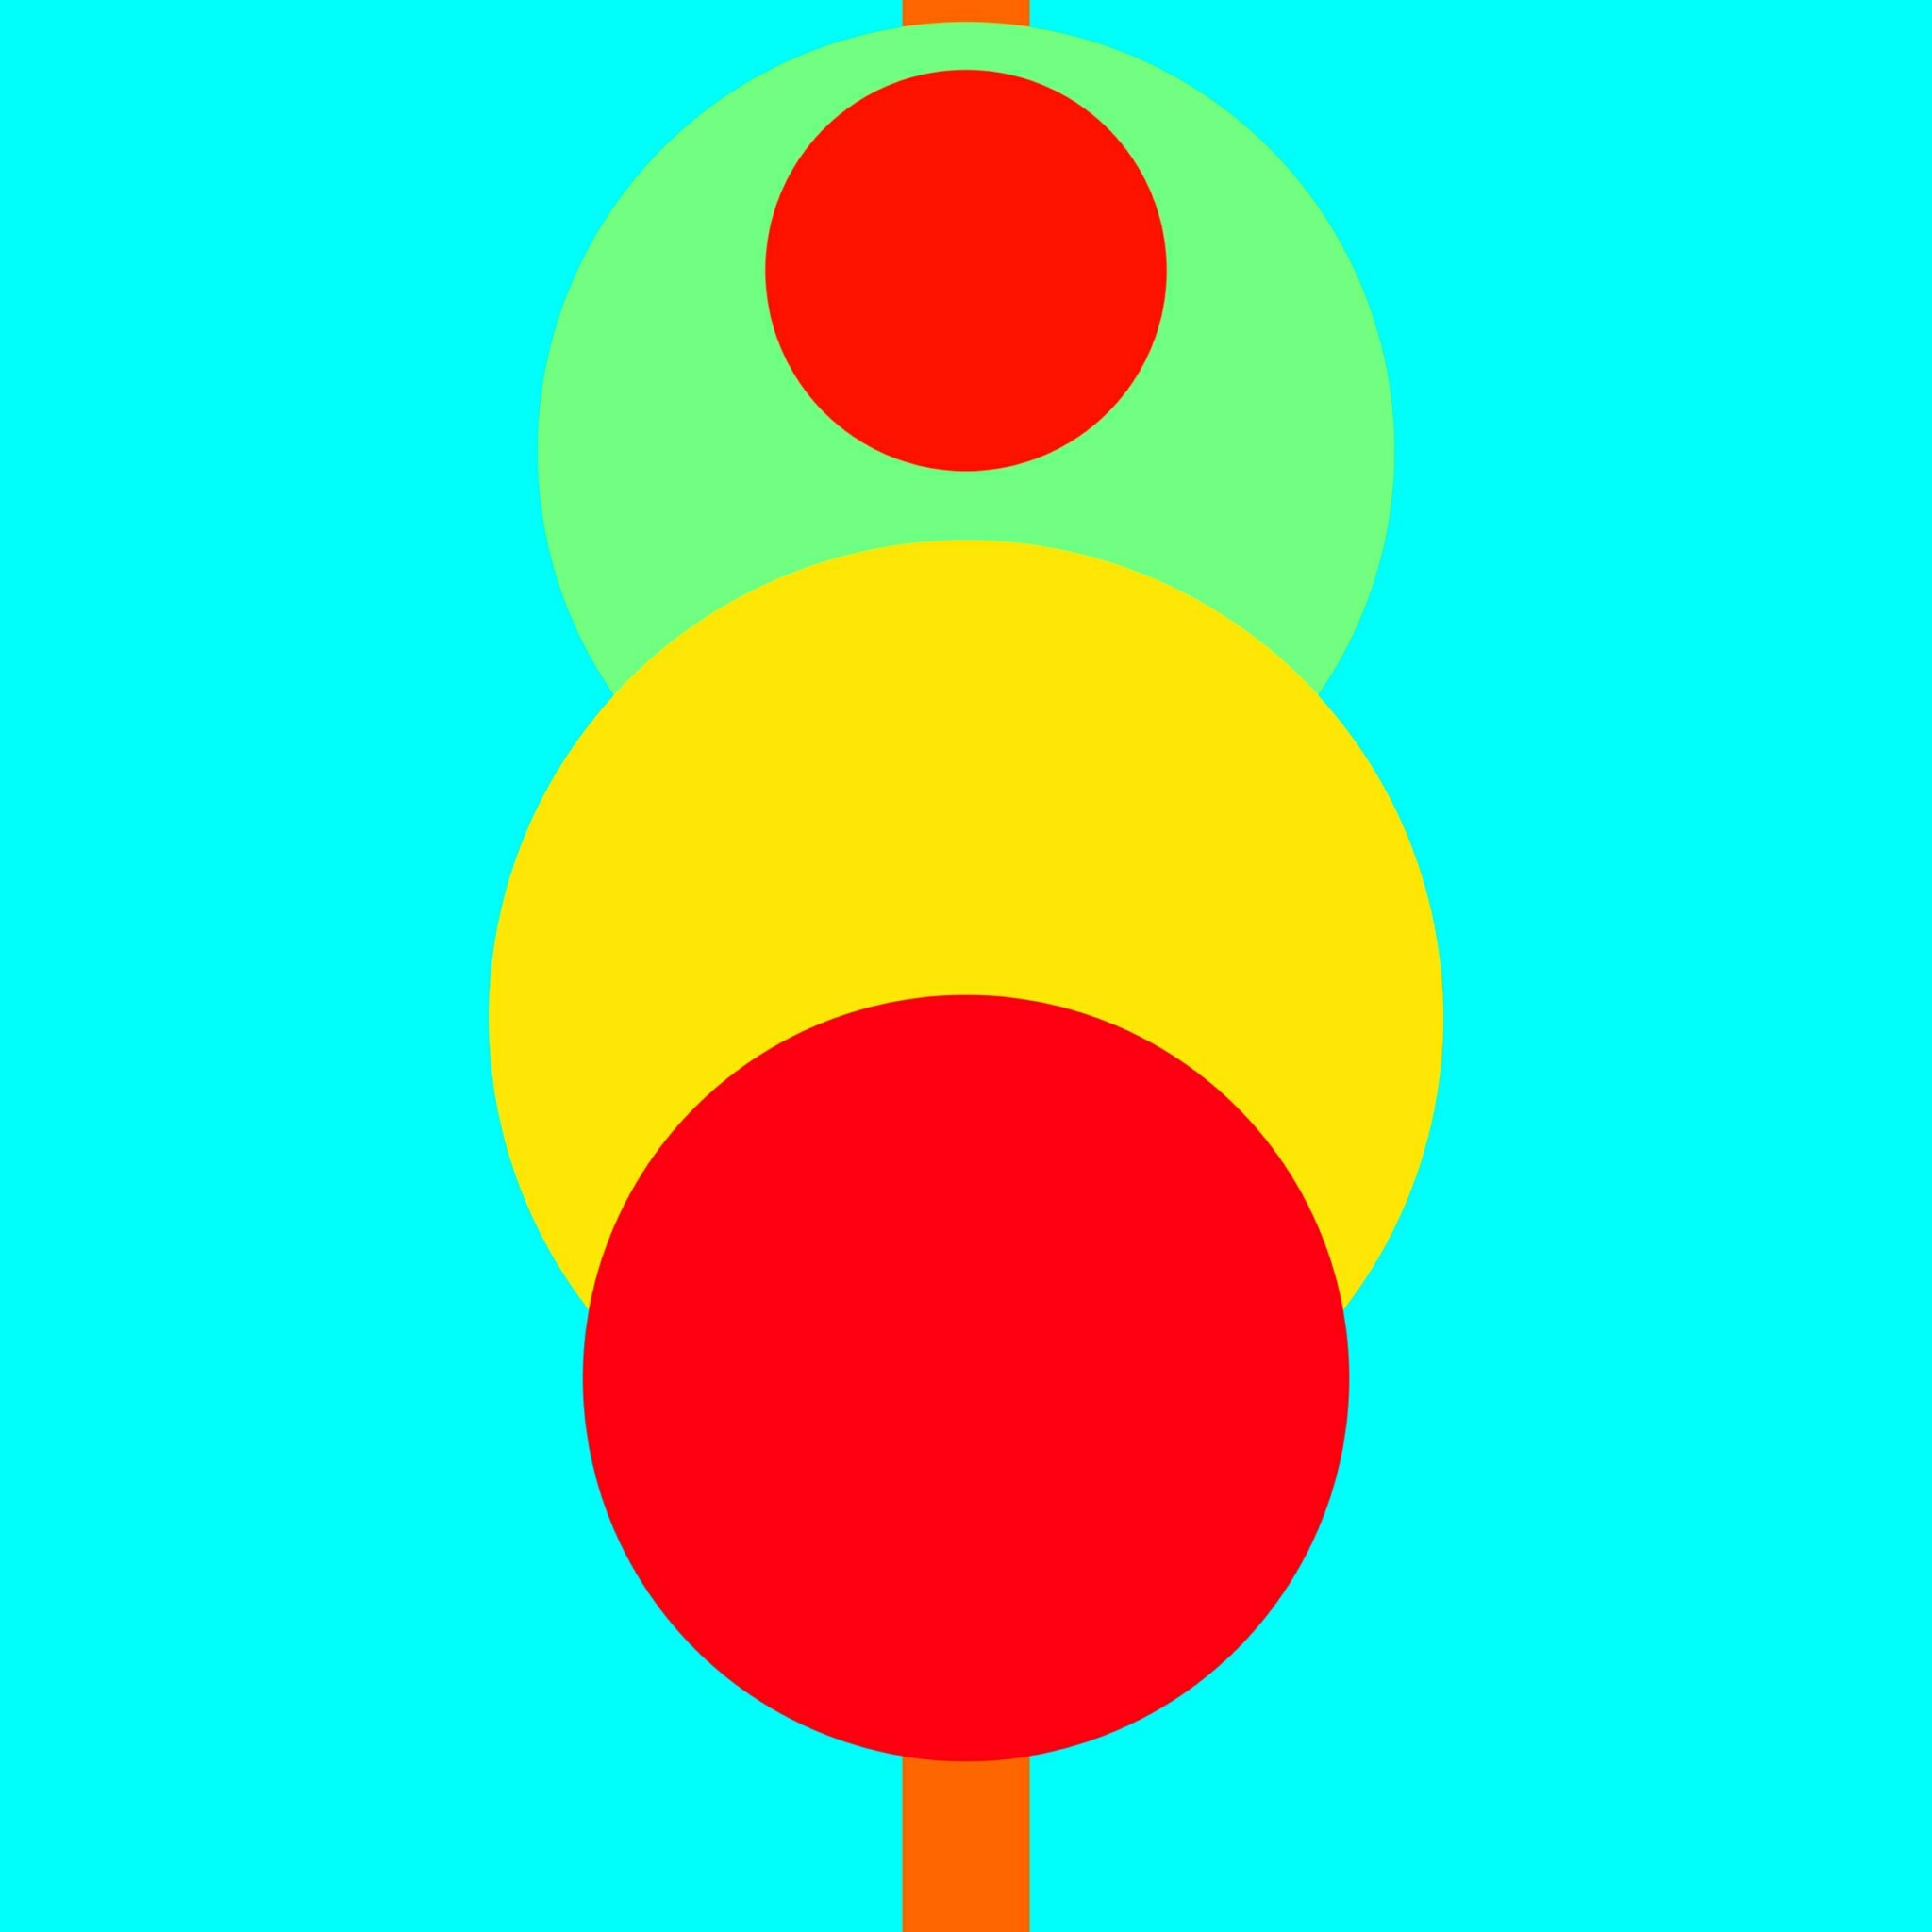 Download wallpaper Design, Lollipop, 5.0, Red, Yellow ...